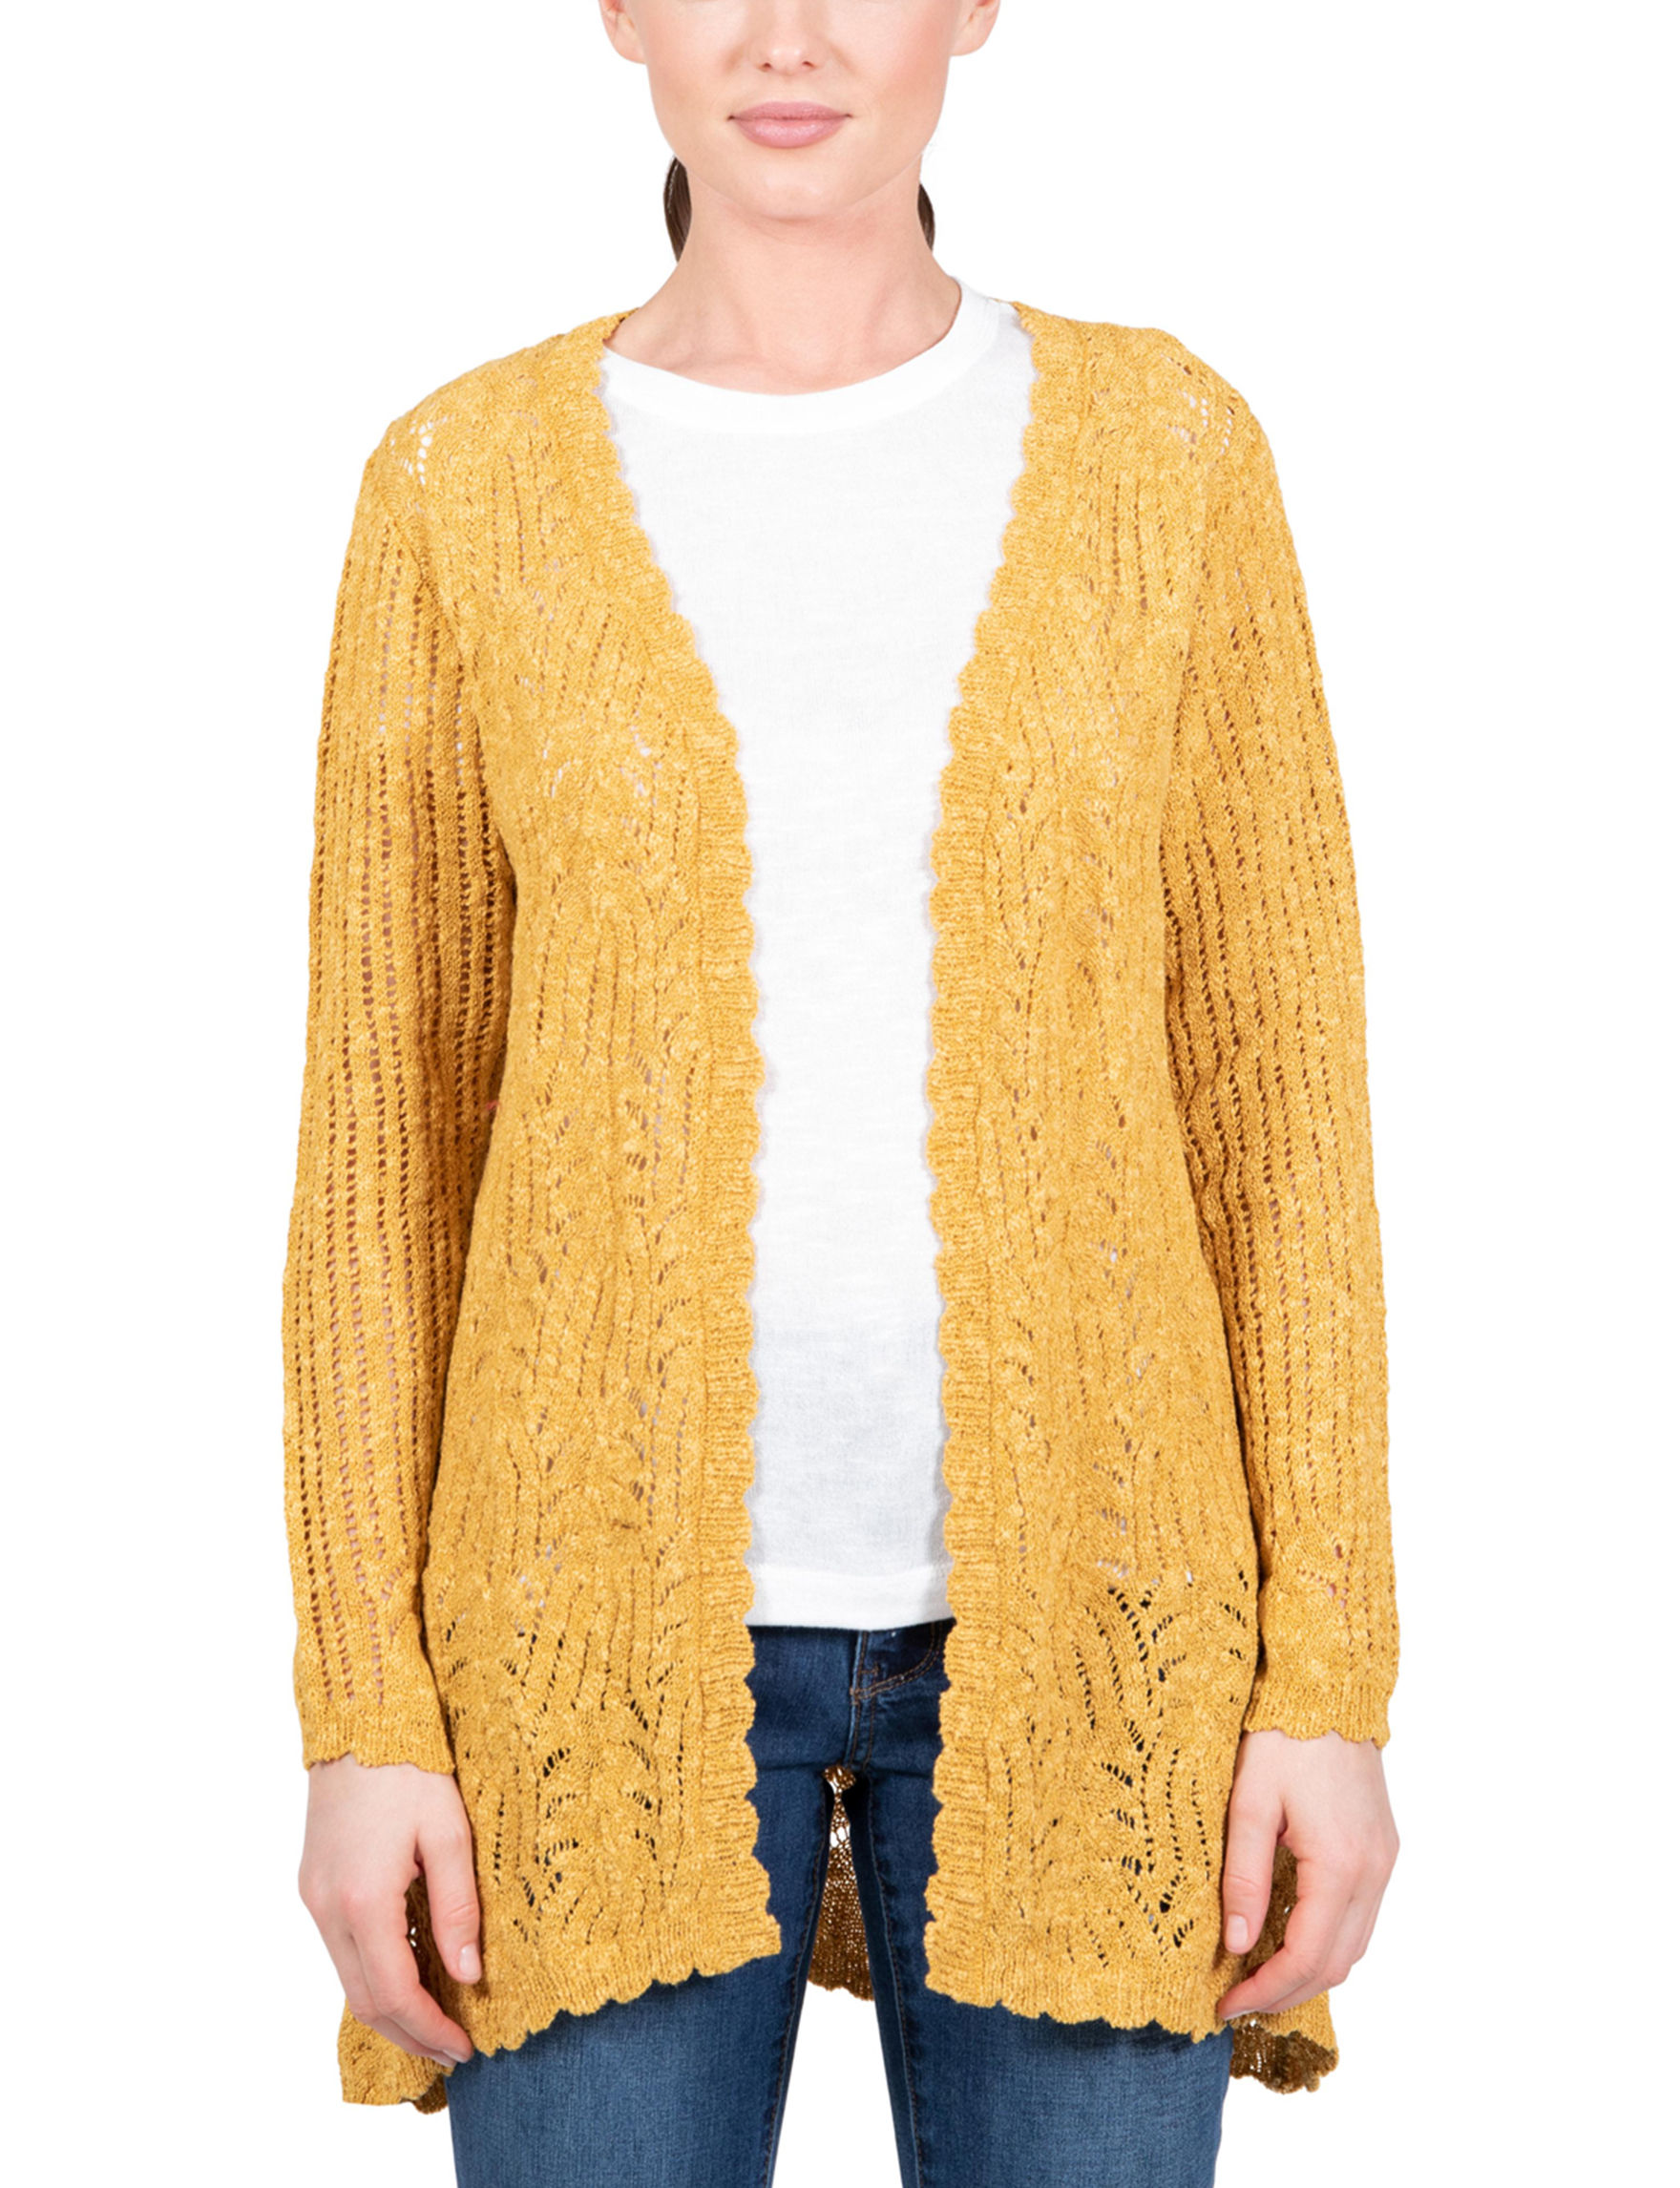 Skyes The Limit Marigold Cardigans